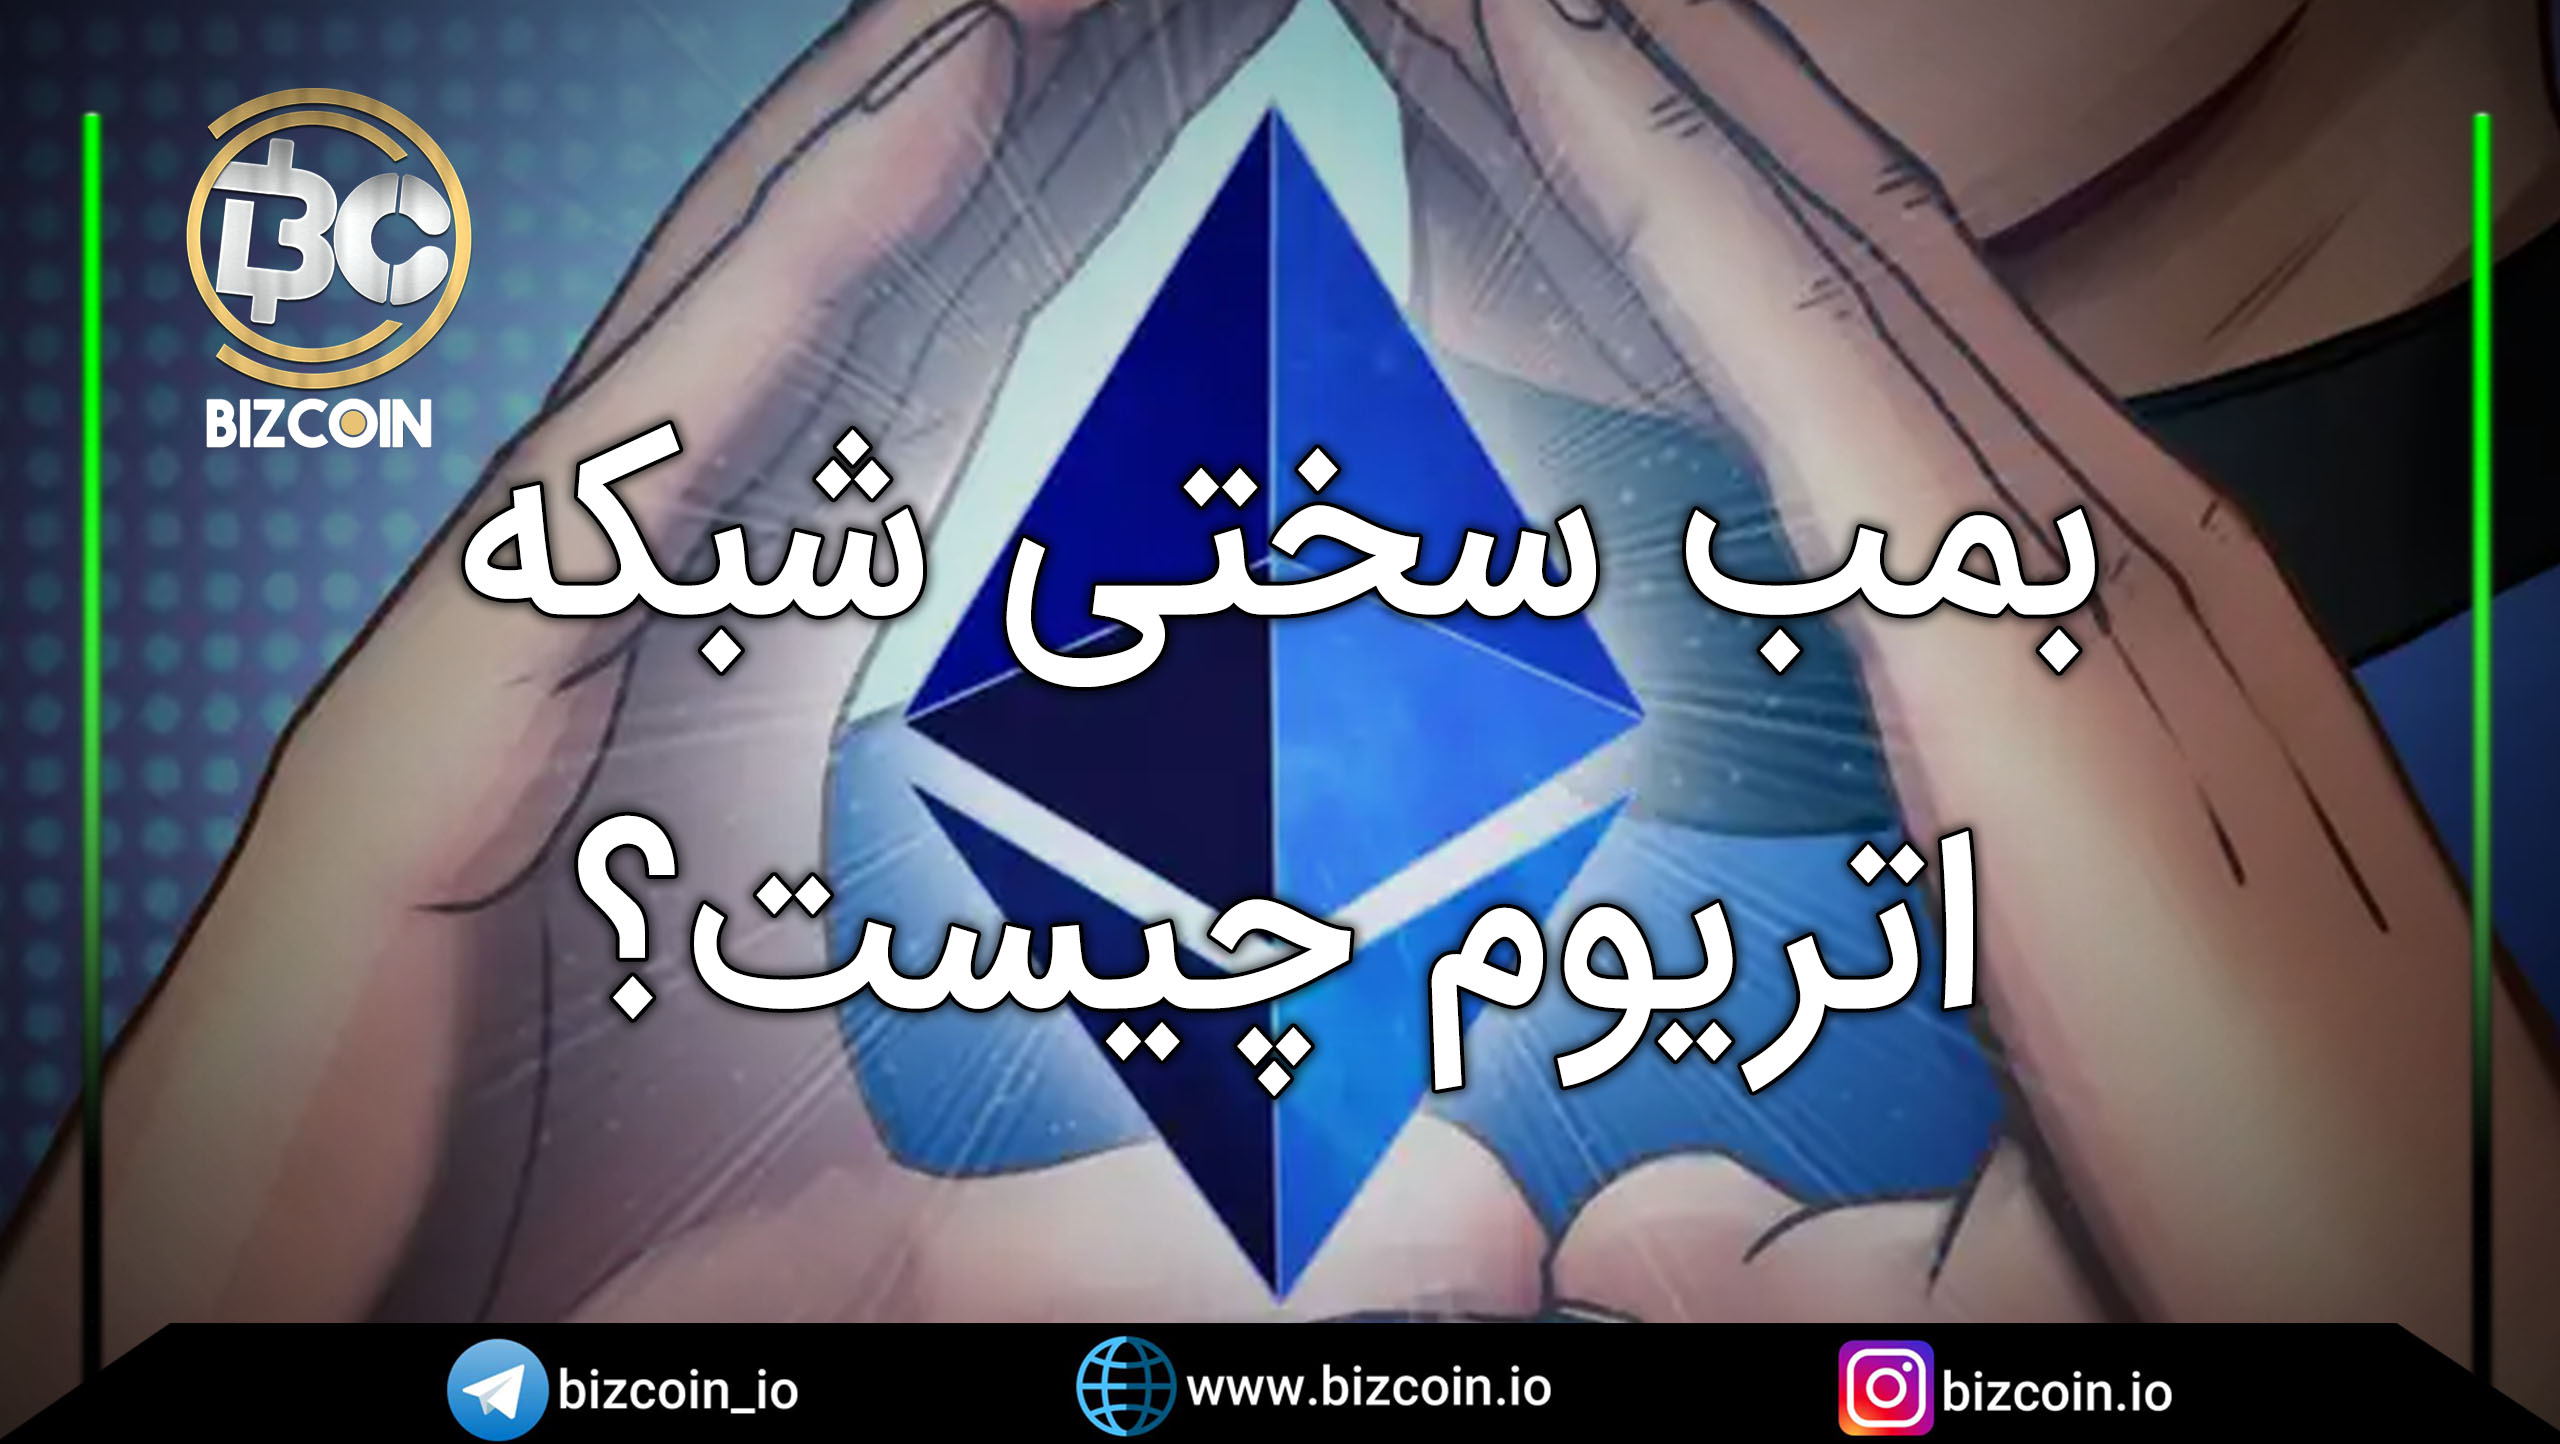 What is the ethereum Network Hardness Bomb بمب سختی شبکه اتریوم چیست؟